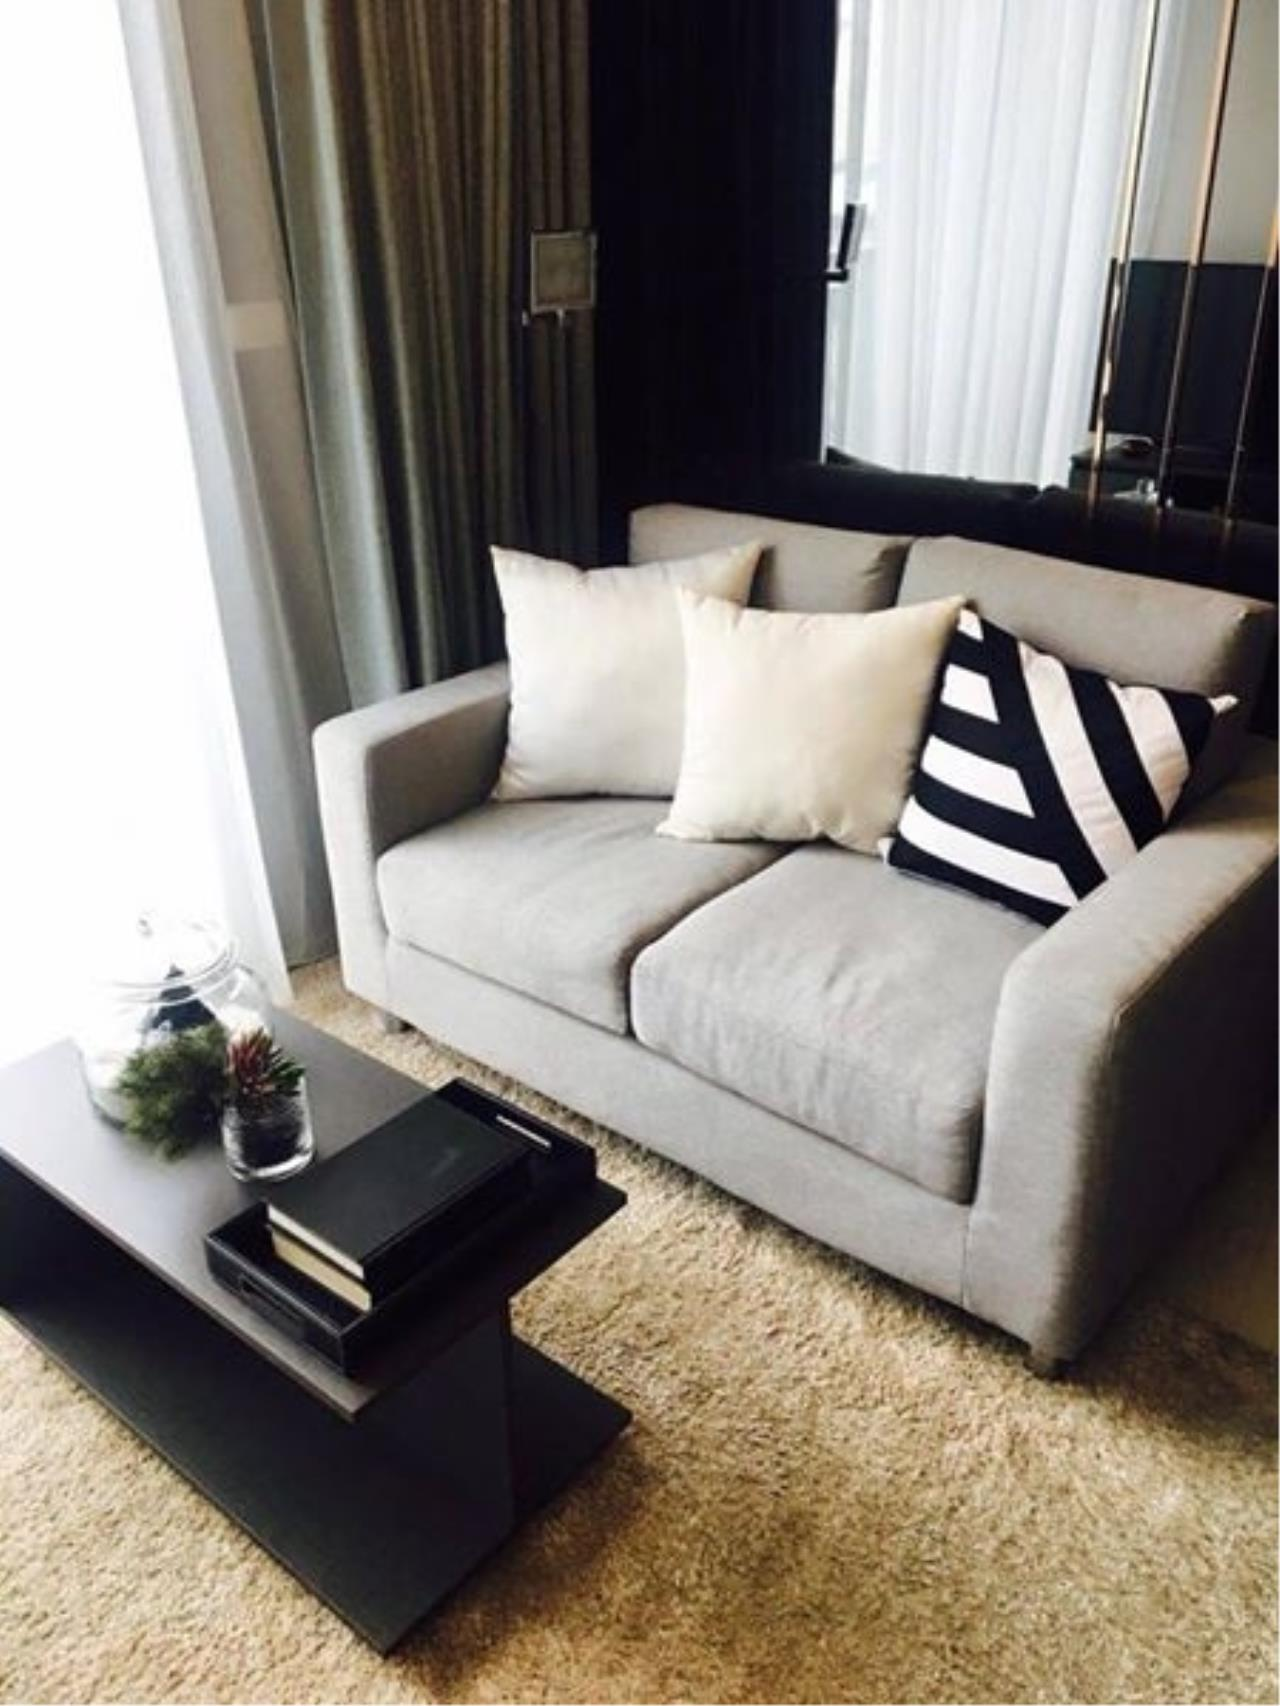 RE/MAX All Star Realty Agency's Rhythm Asoke beautiful rooms for sale/rent 1